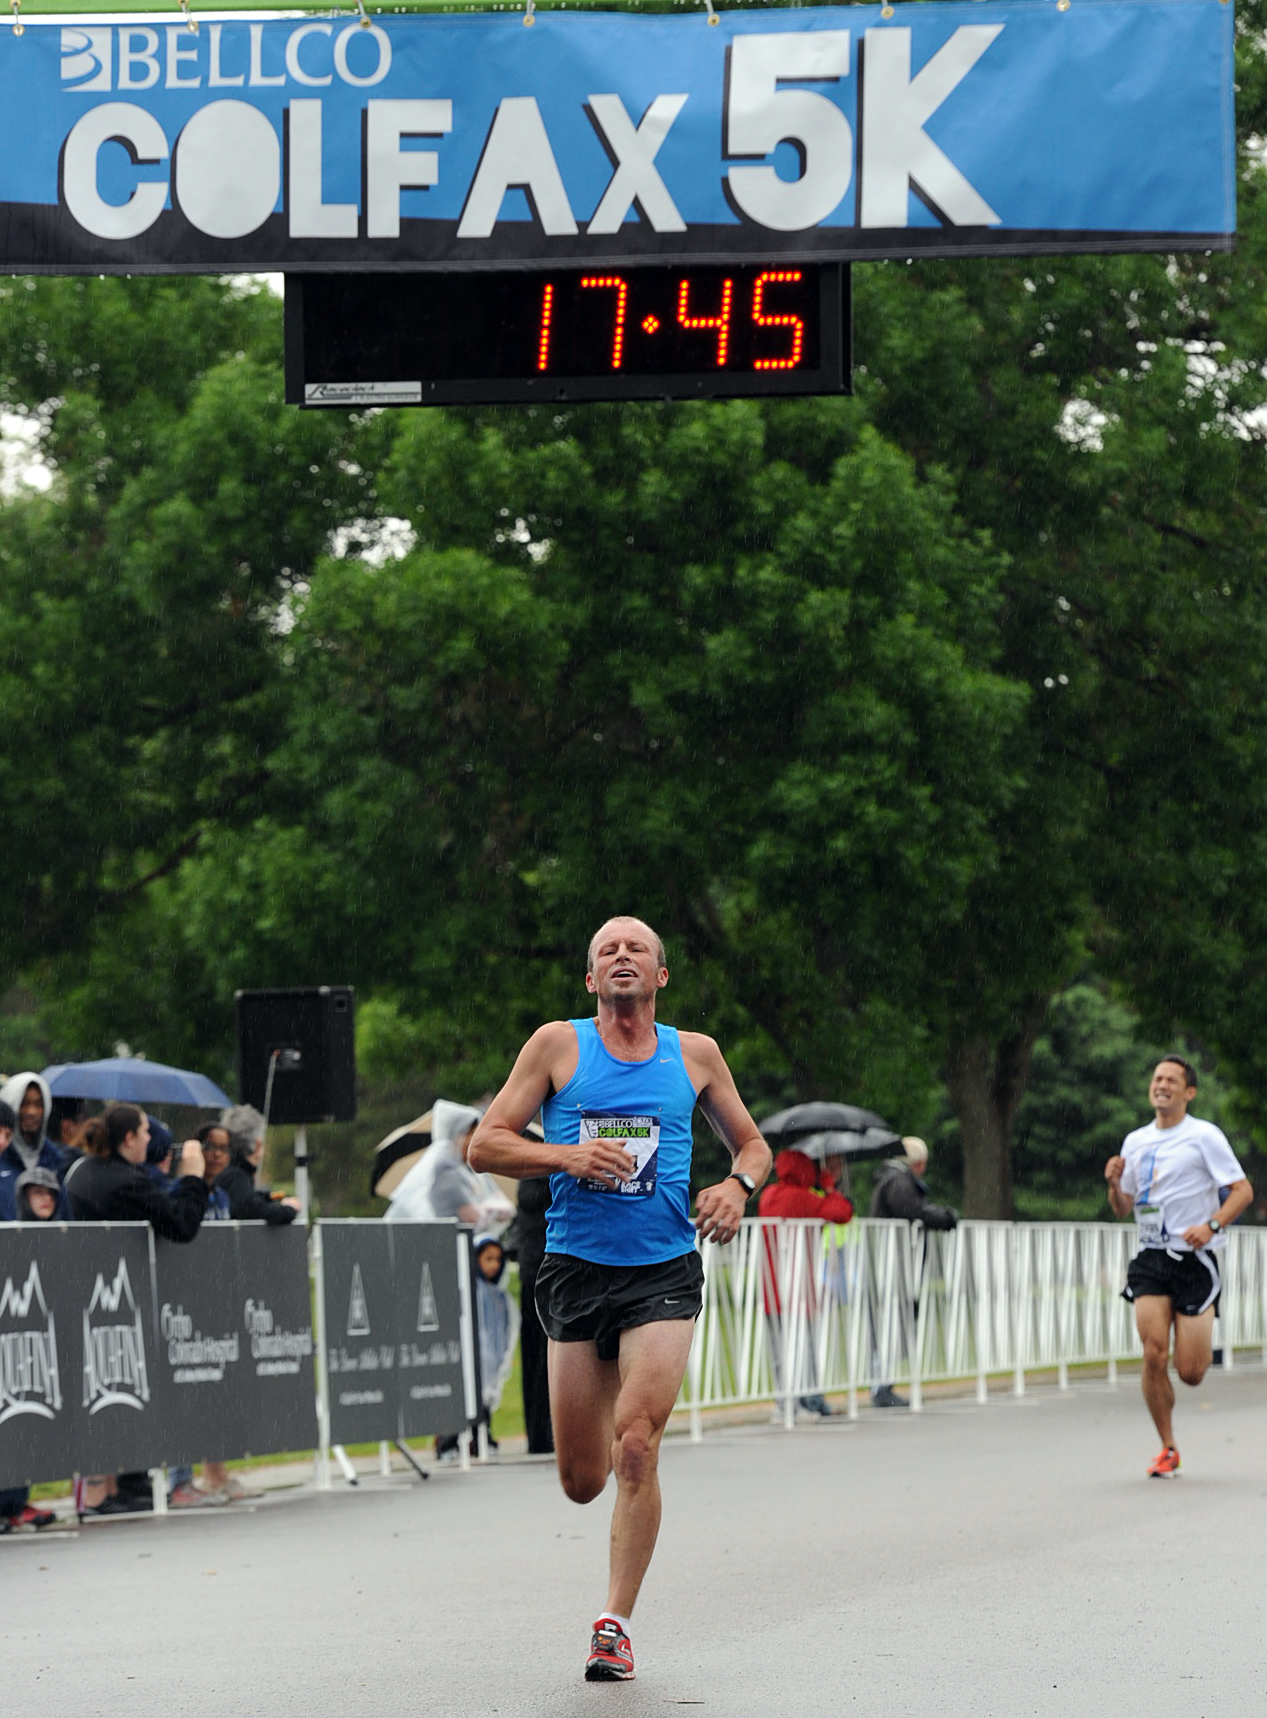 Edward Legrice crosses the finish line. Photo by David Merrill.